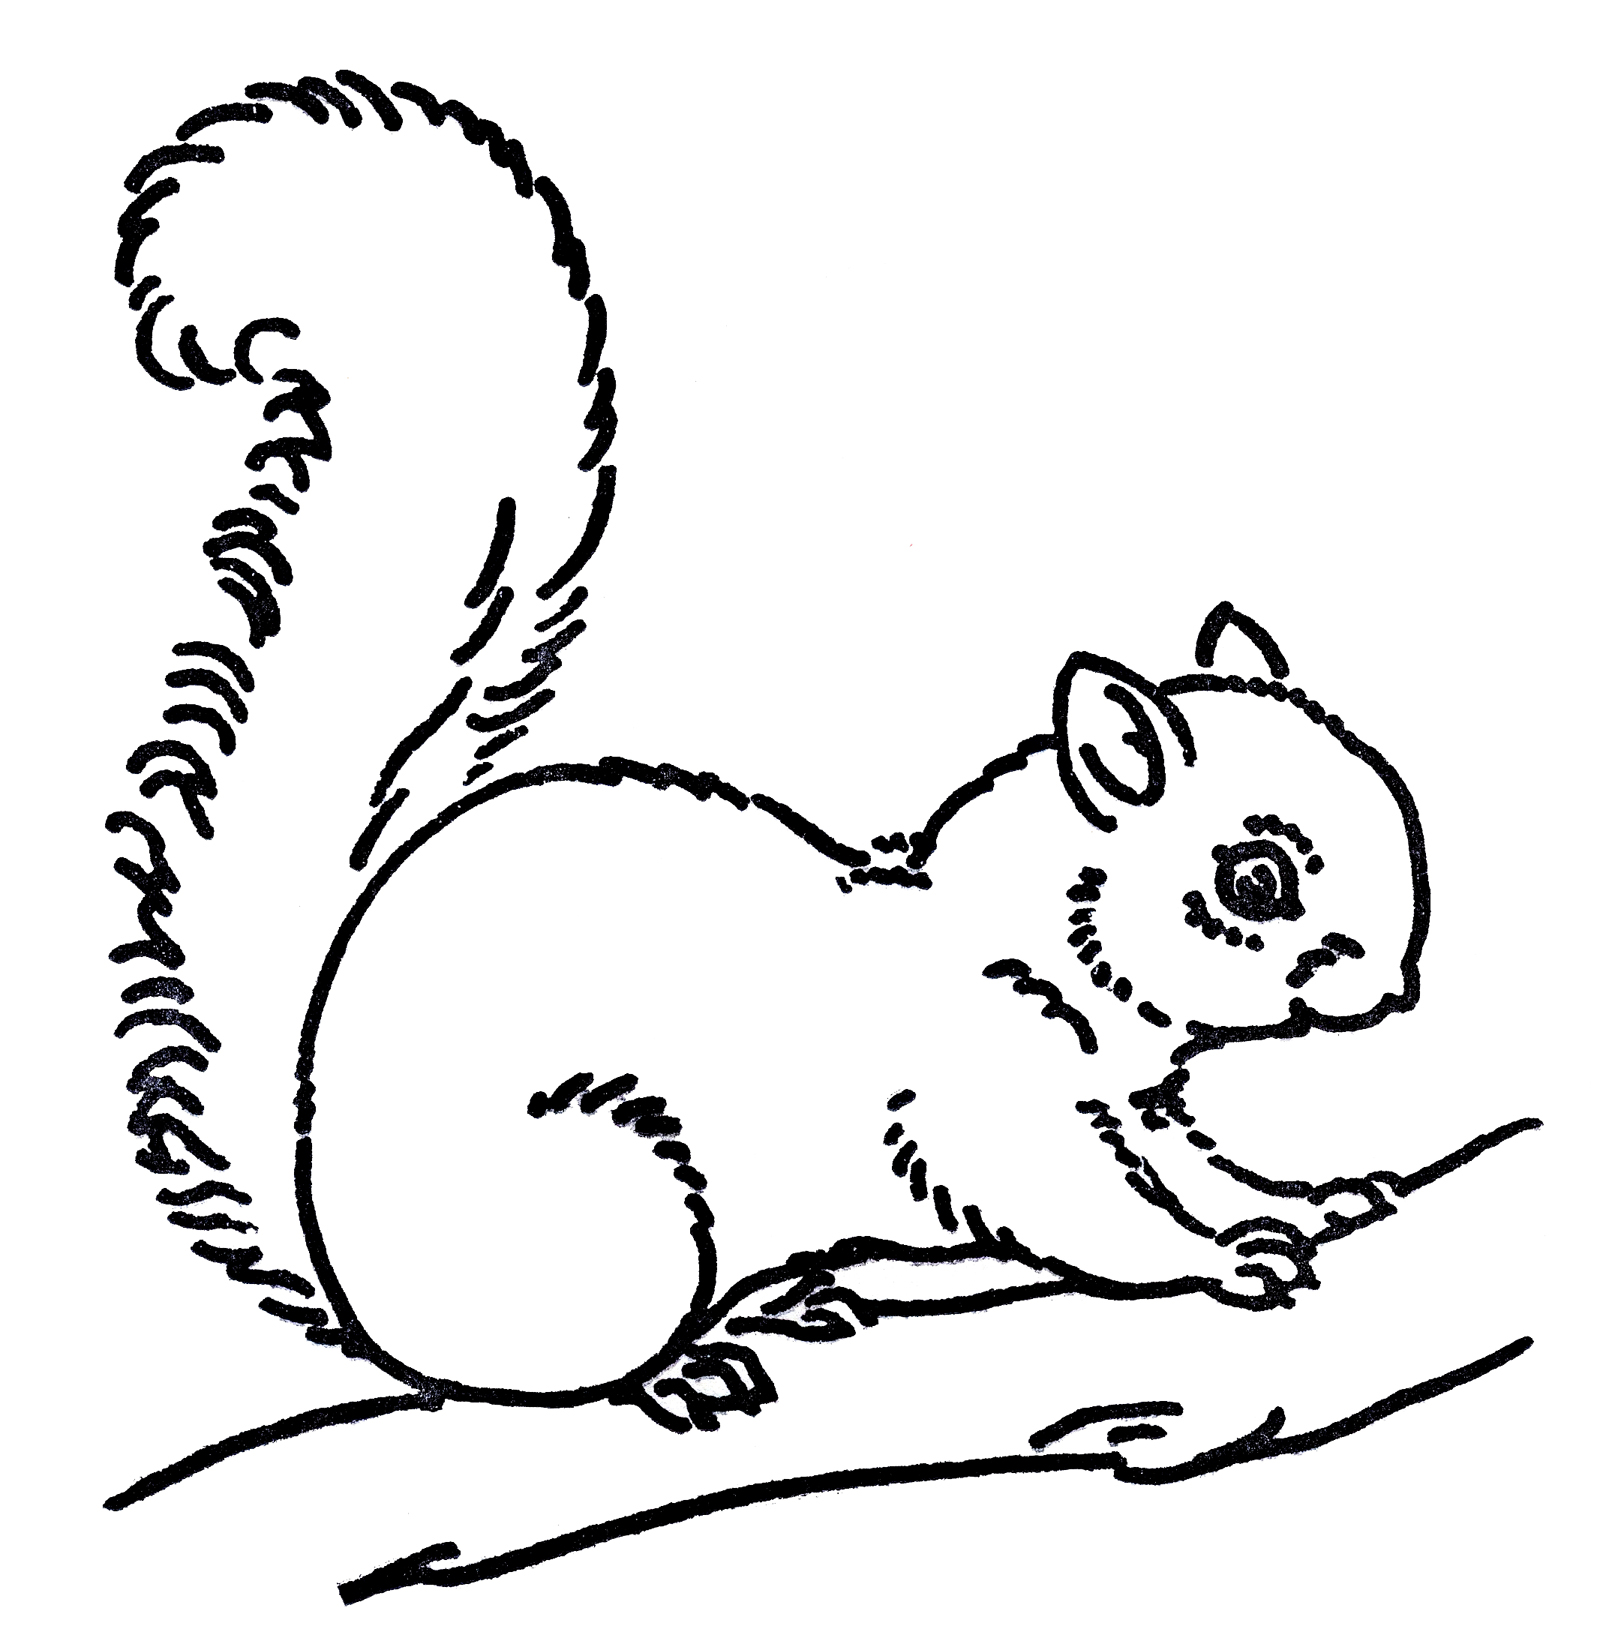 Drawn rodent basic Fairy Art Free Free Squirrel